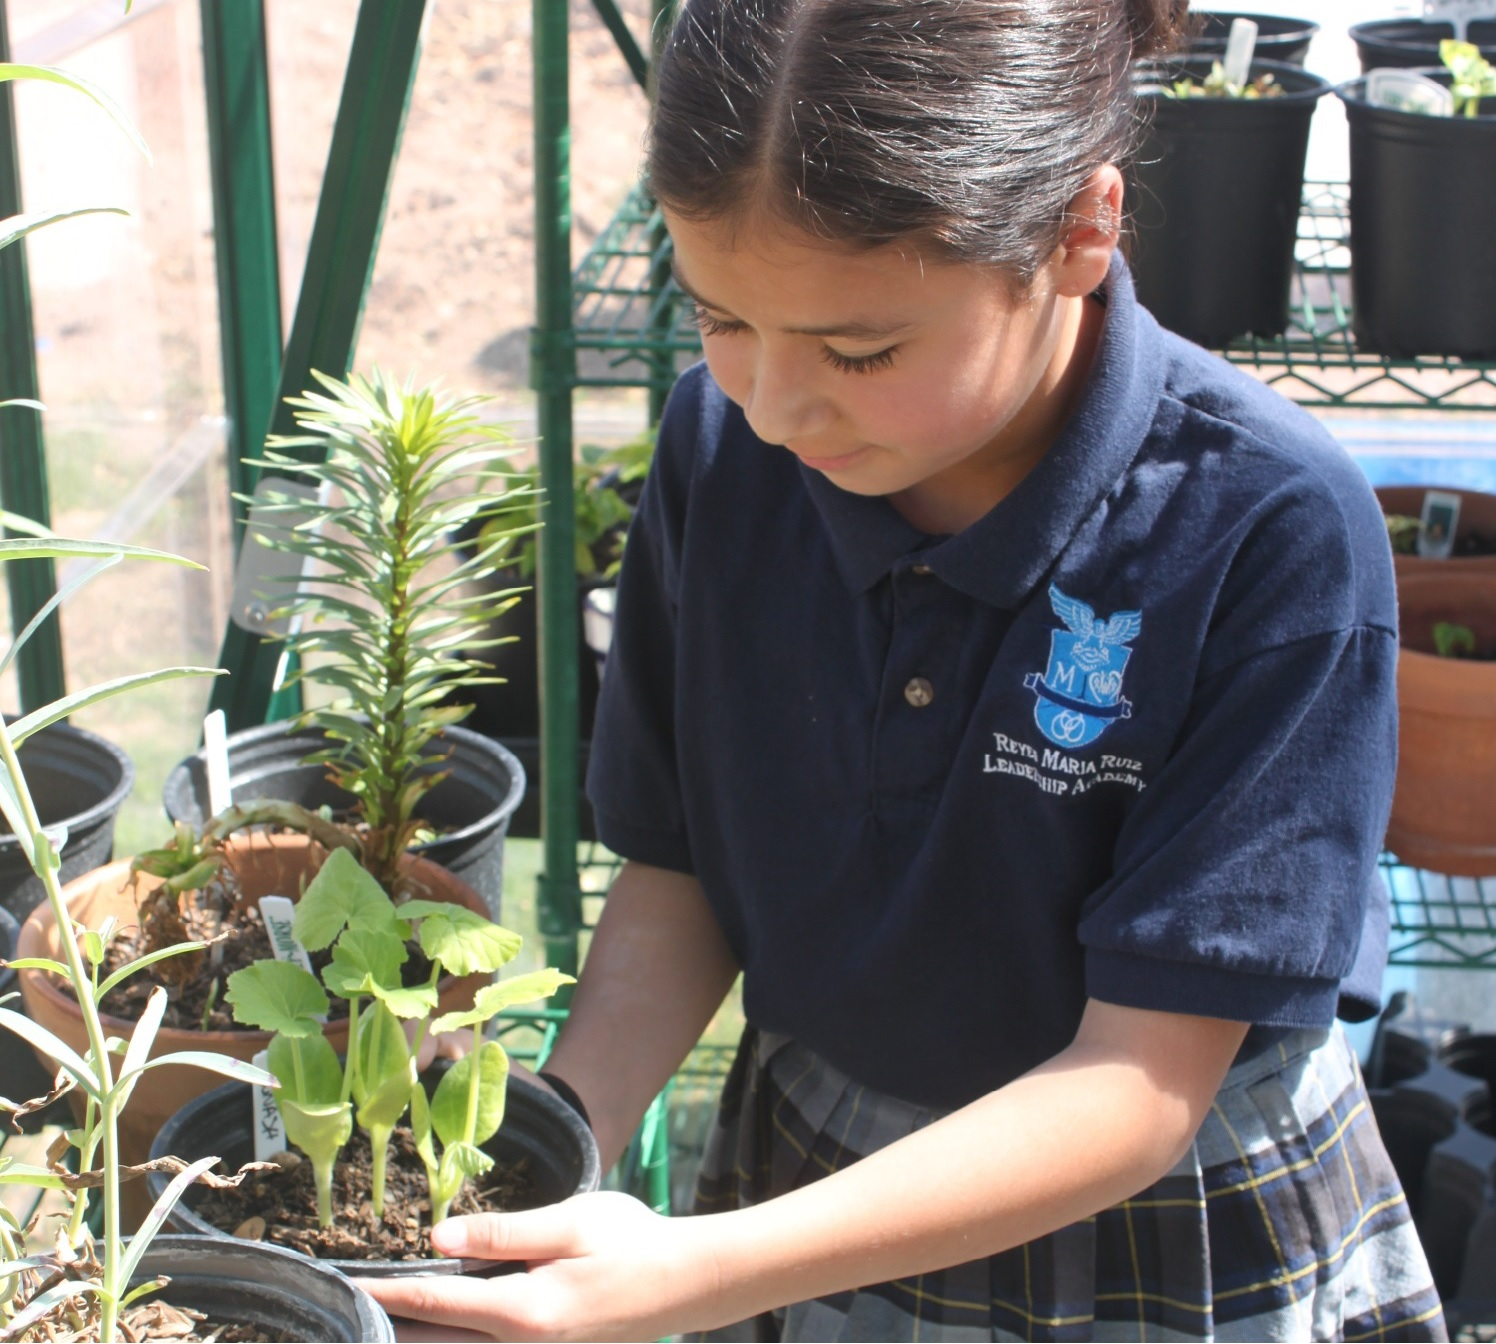 Student at Reyes Maria Ruiz Leadership Academy holding a plant.